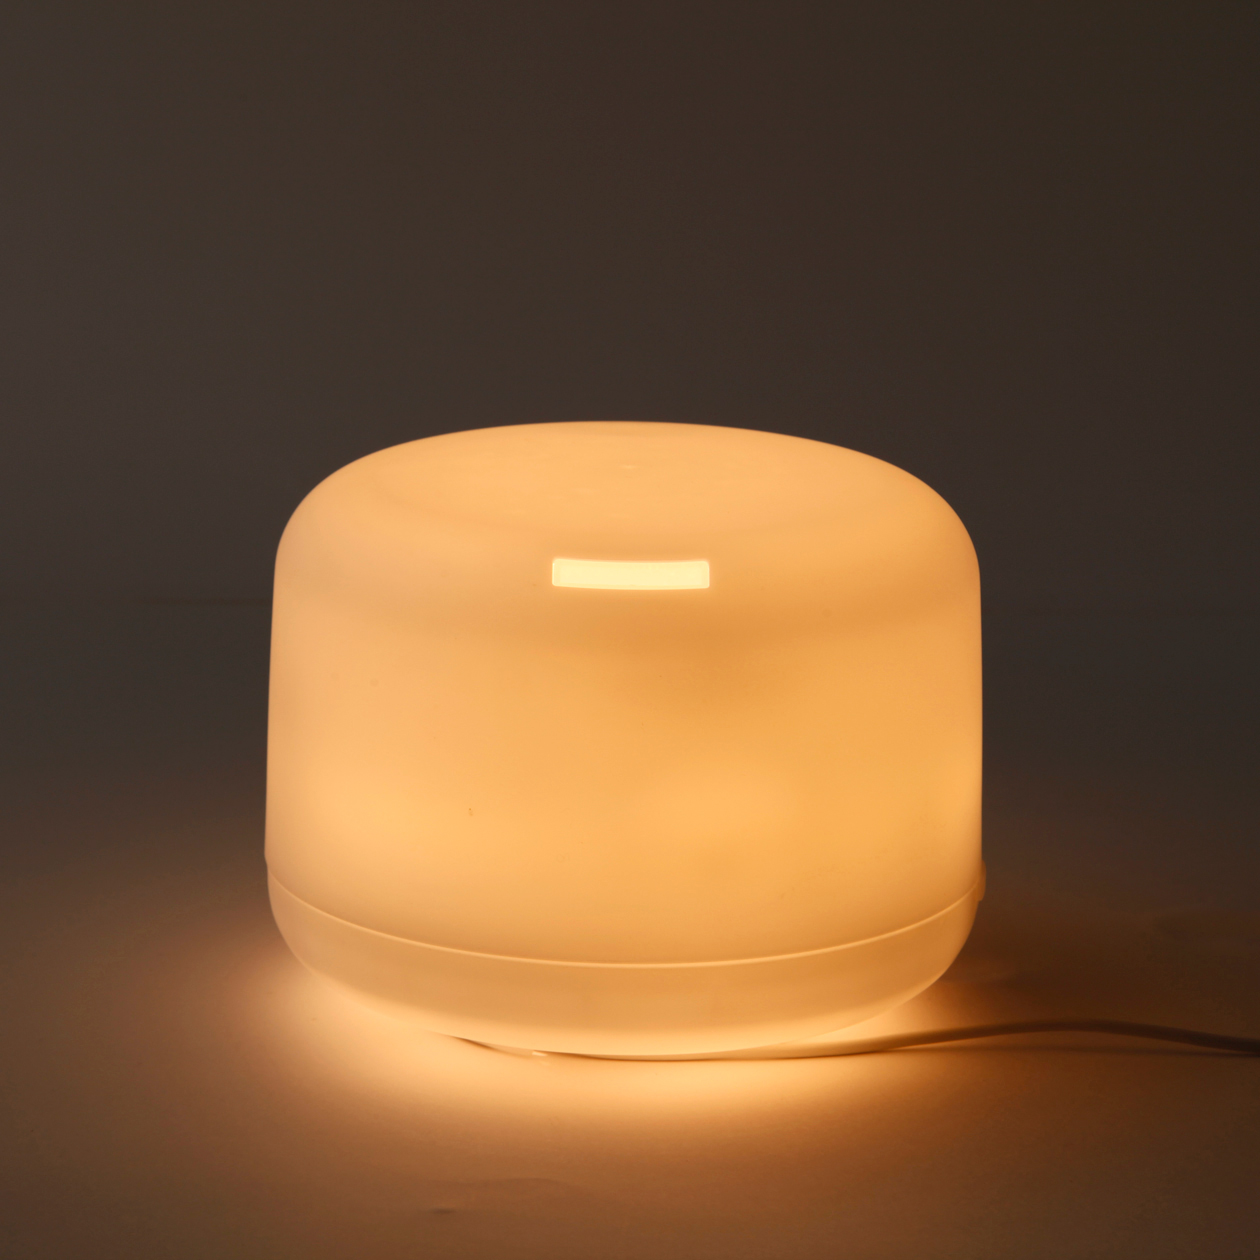 new muji ultrasonic wave moisturising aroma diffuser led. Black Bedroom Furniture Sets. Home Design Ideas